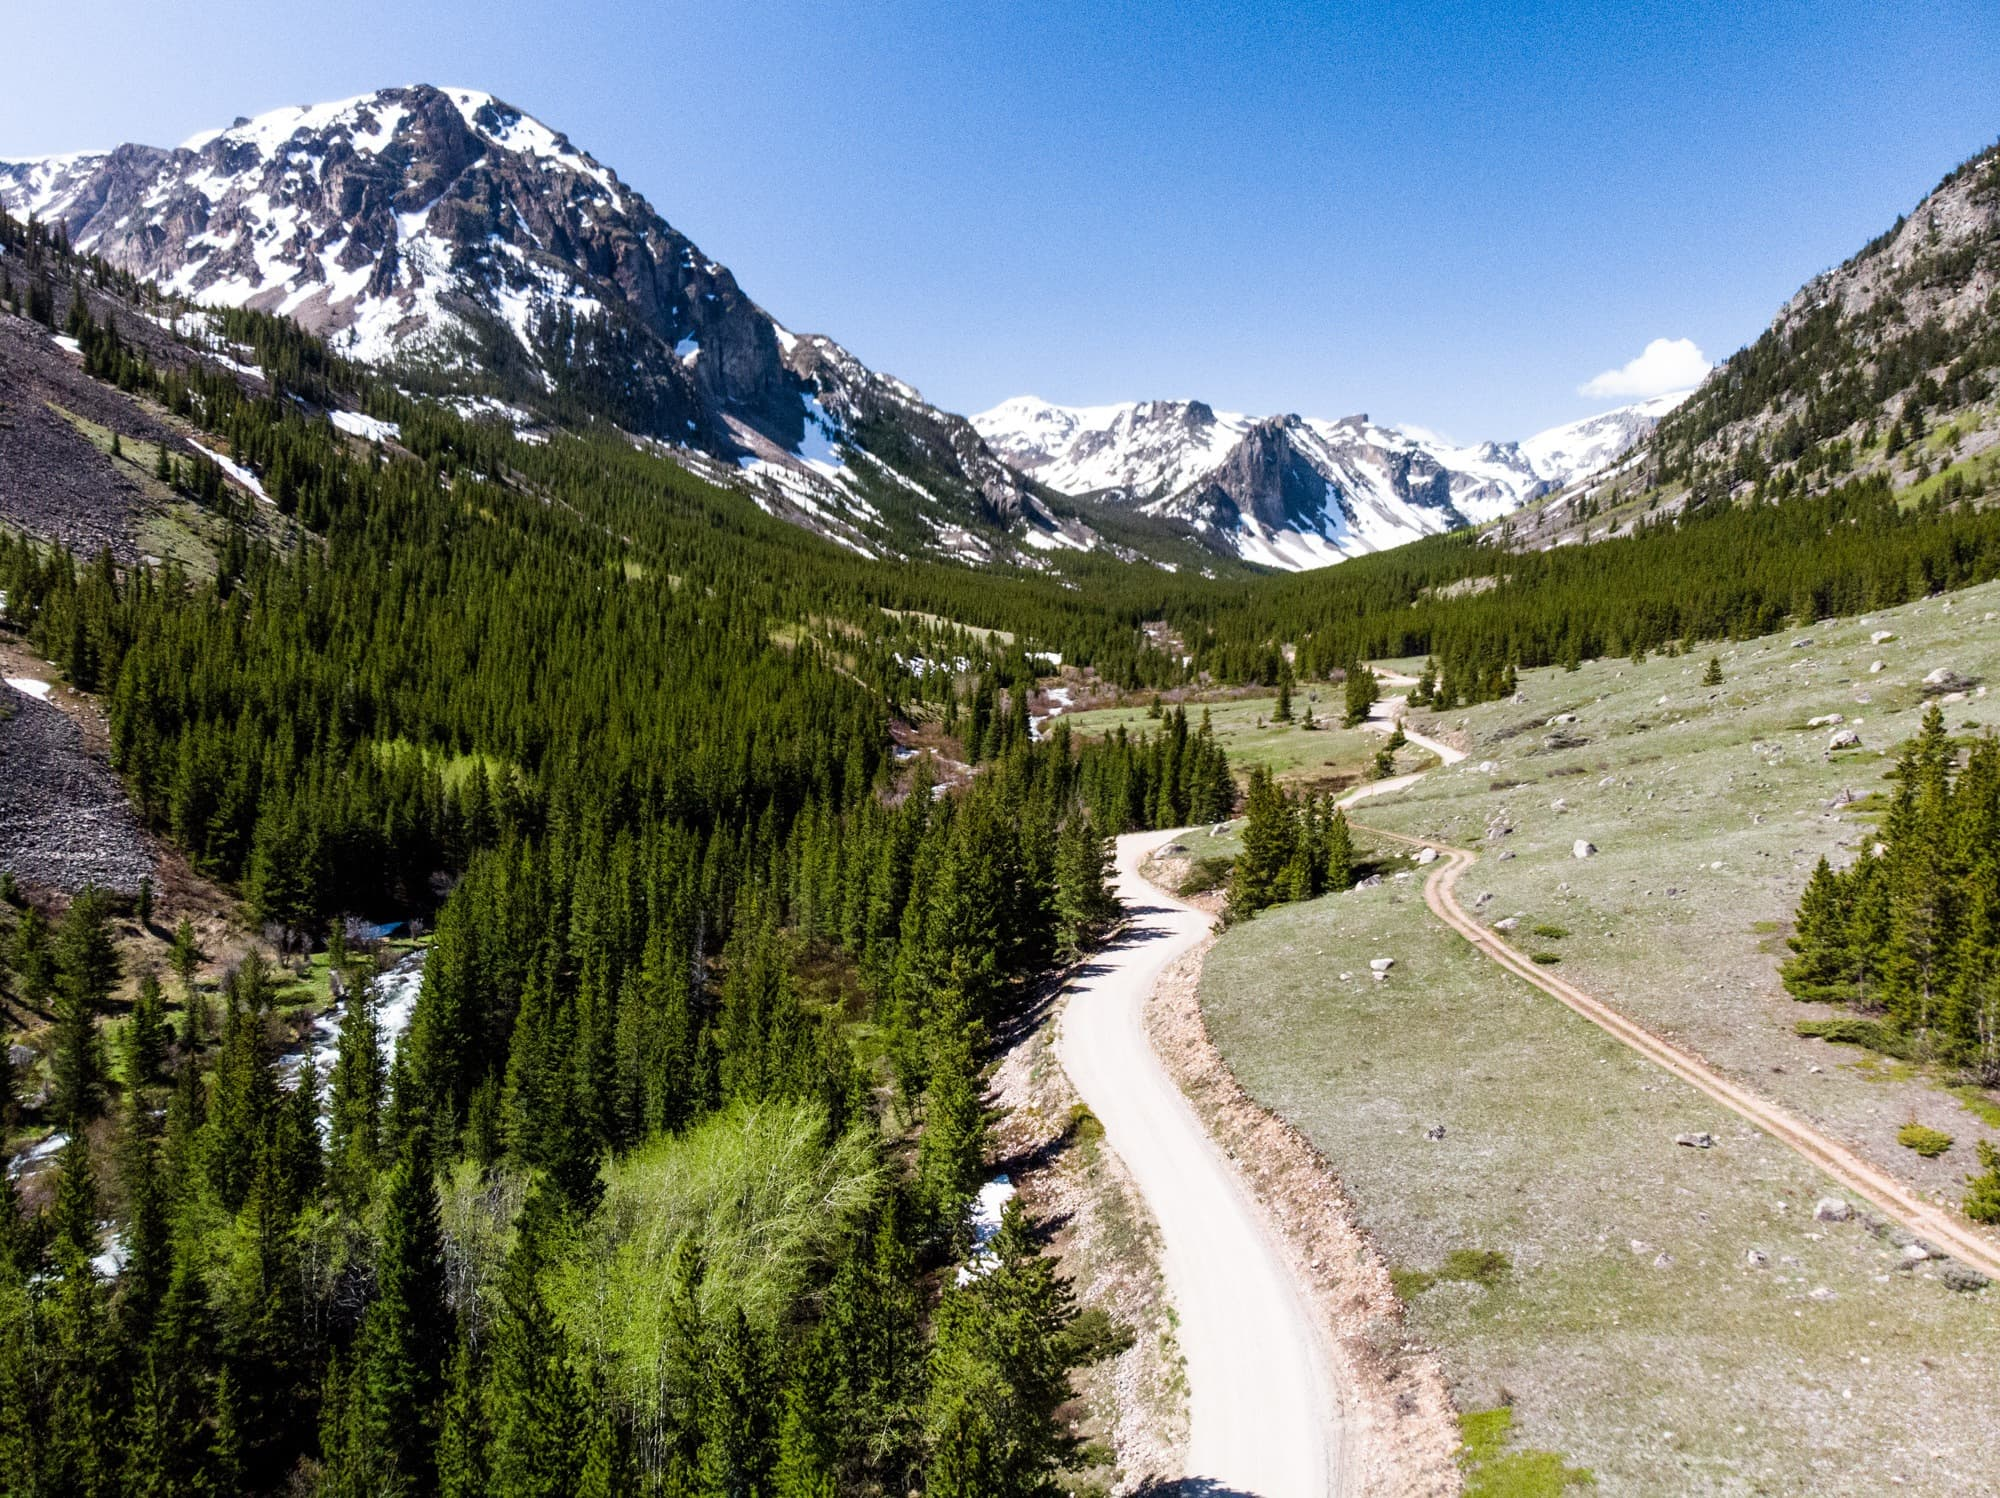 7-Day Southeast Montana Itinerary for Outdoor Enthusiasts